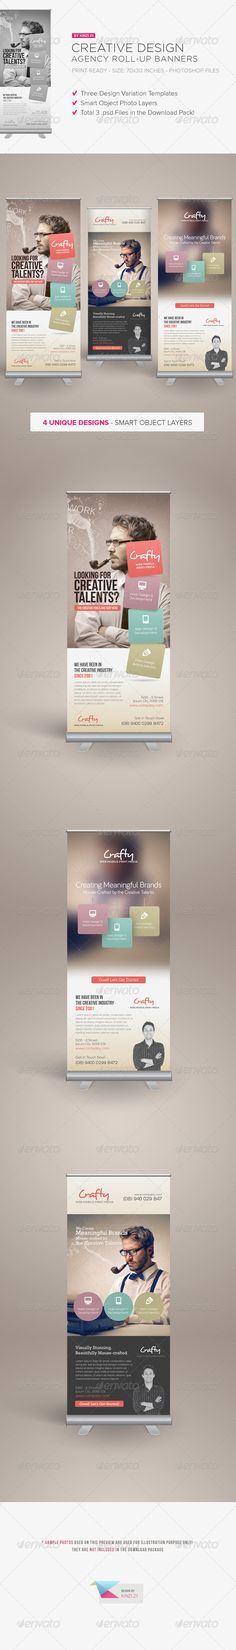 Really cool roll-up banners design